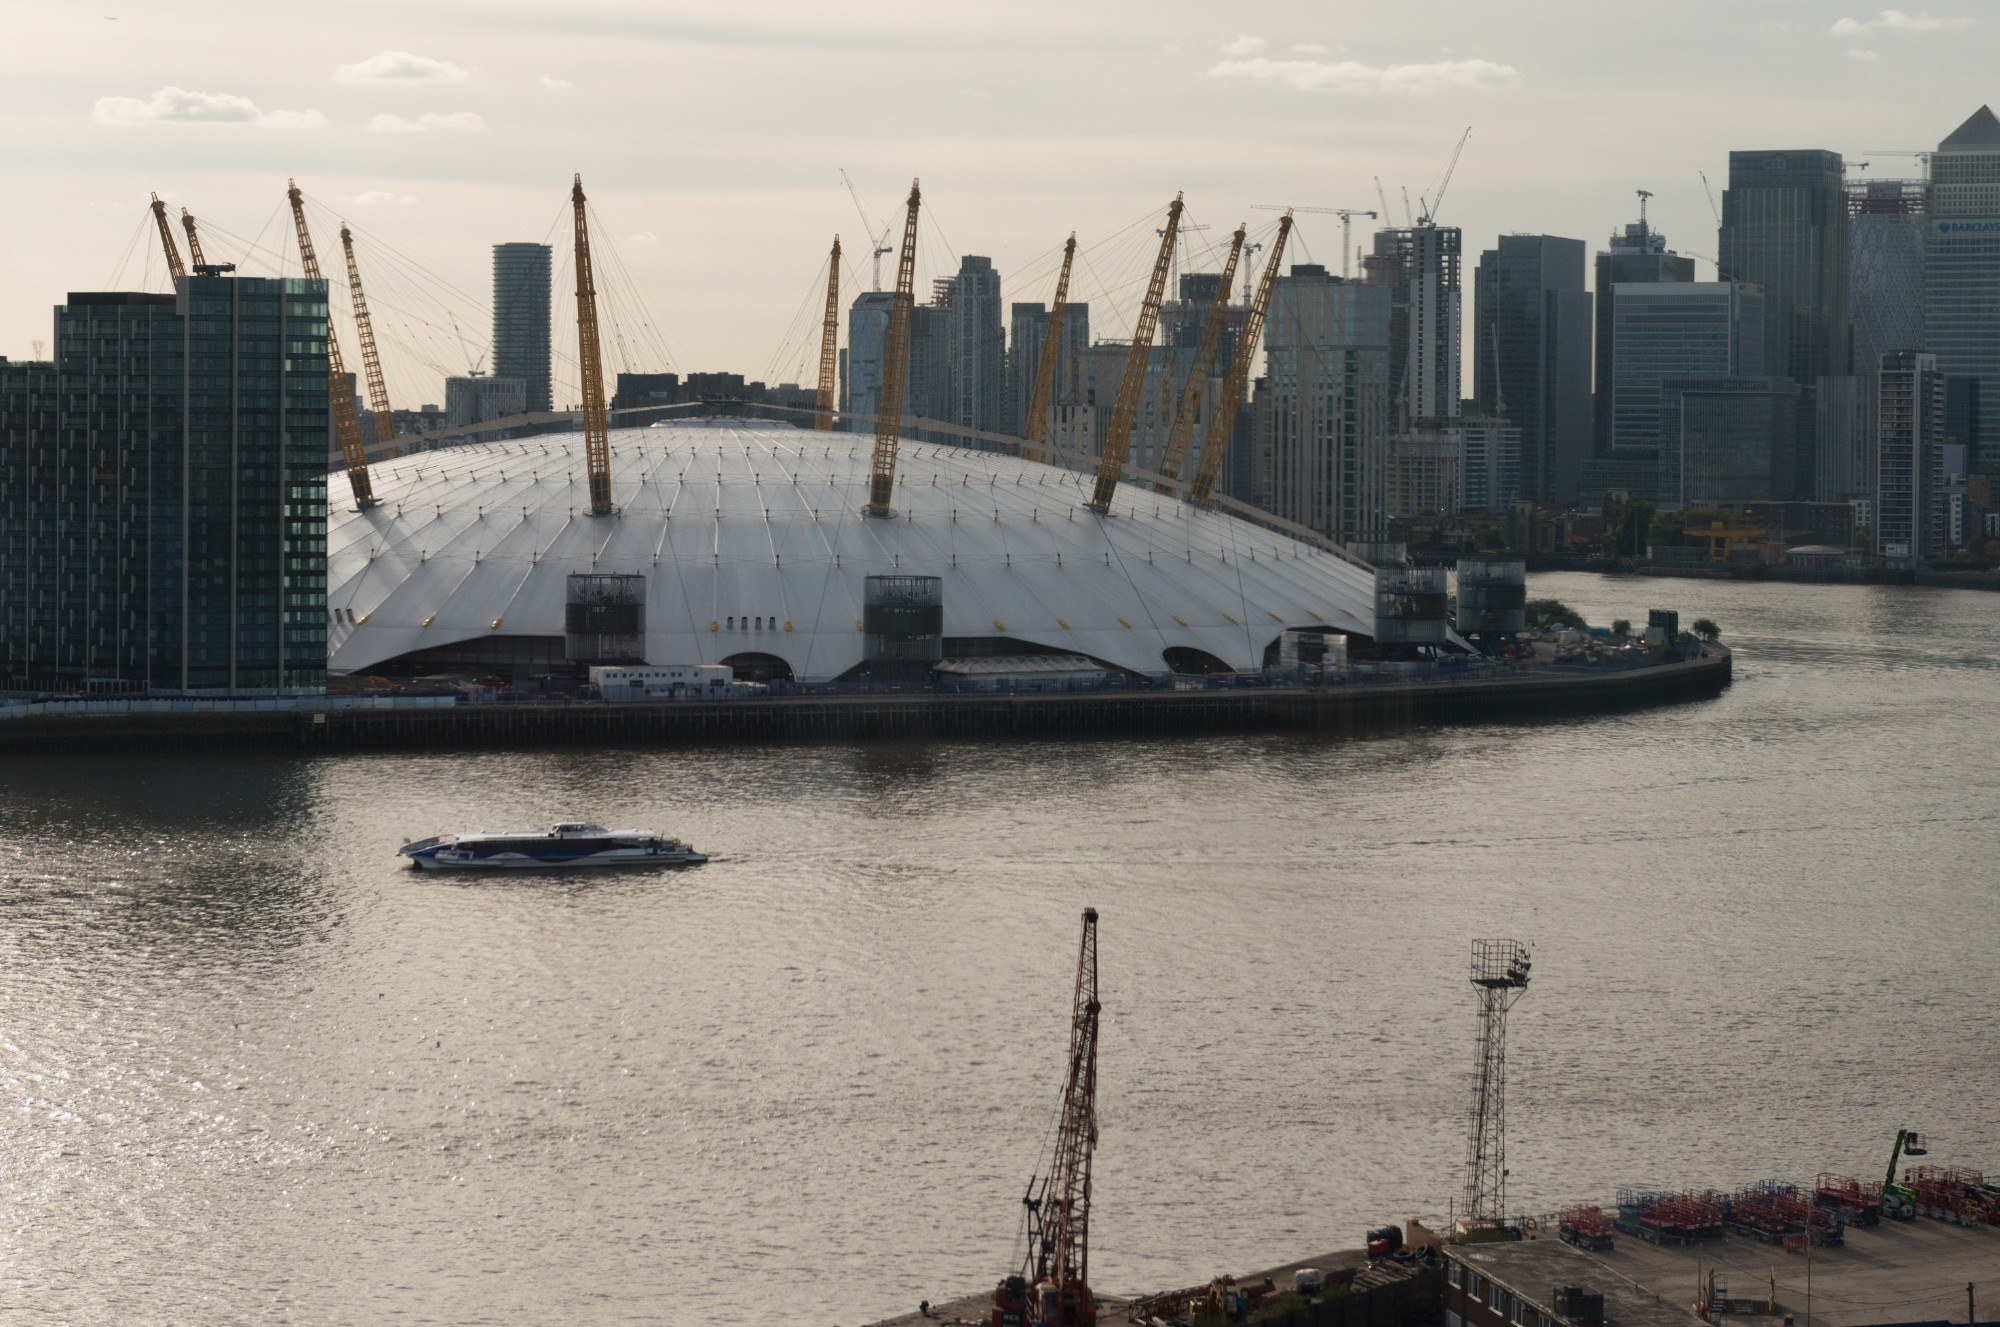 View of the O2 and the Thames from above